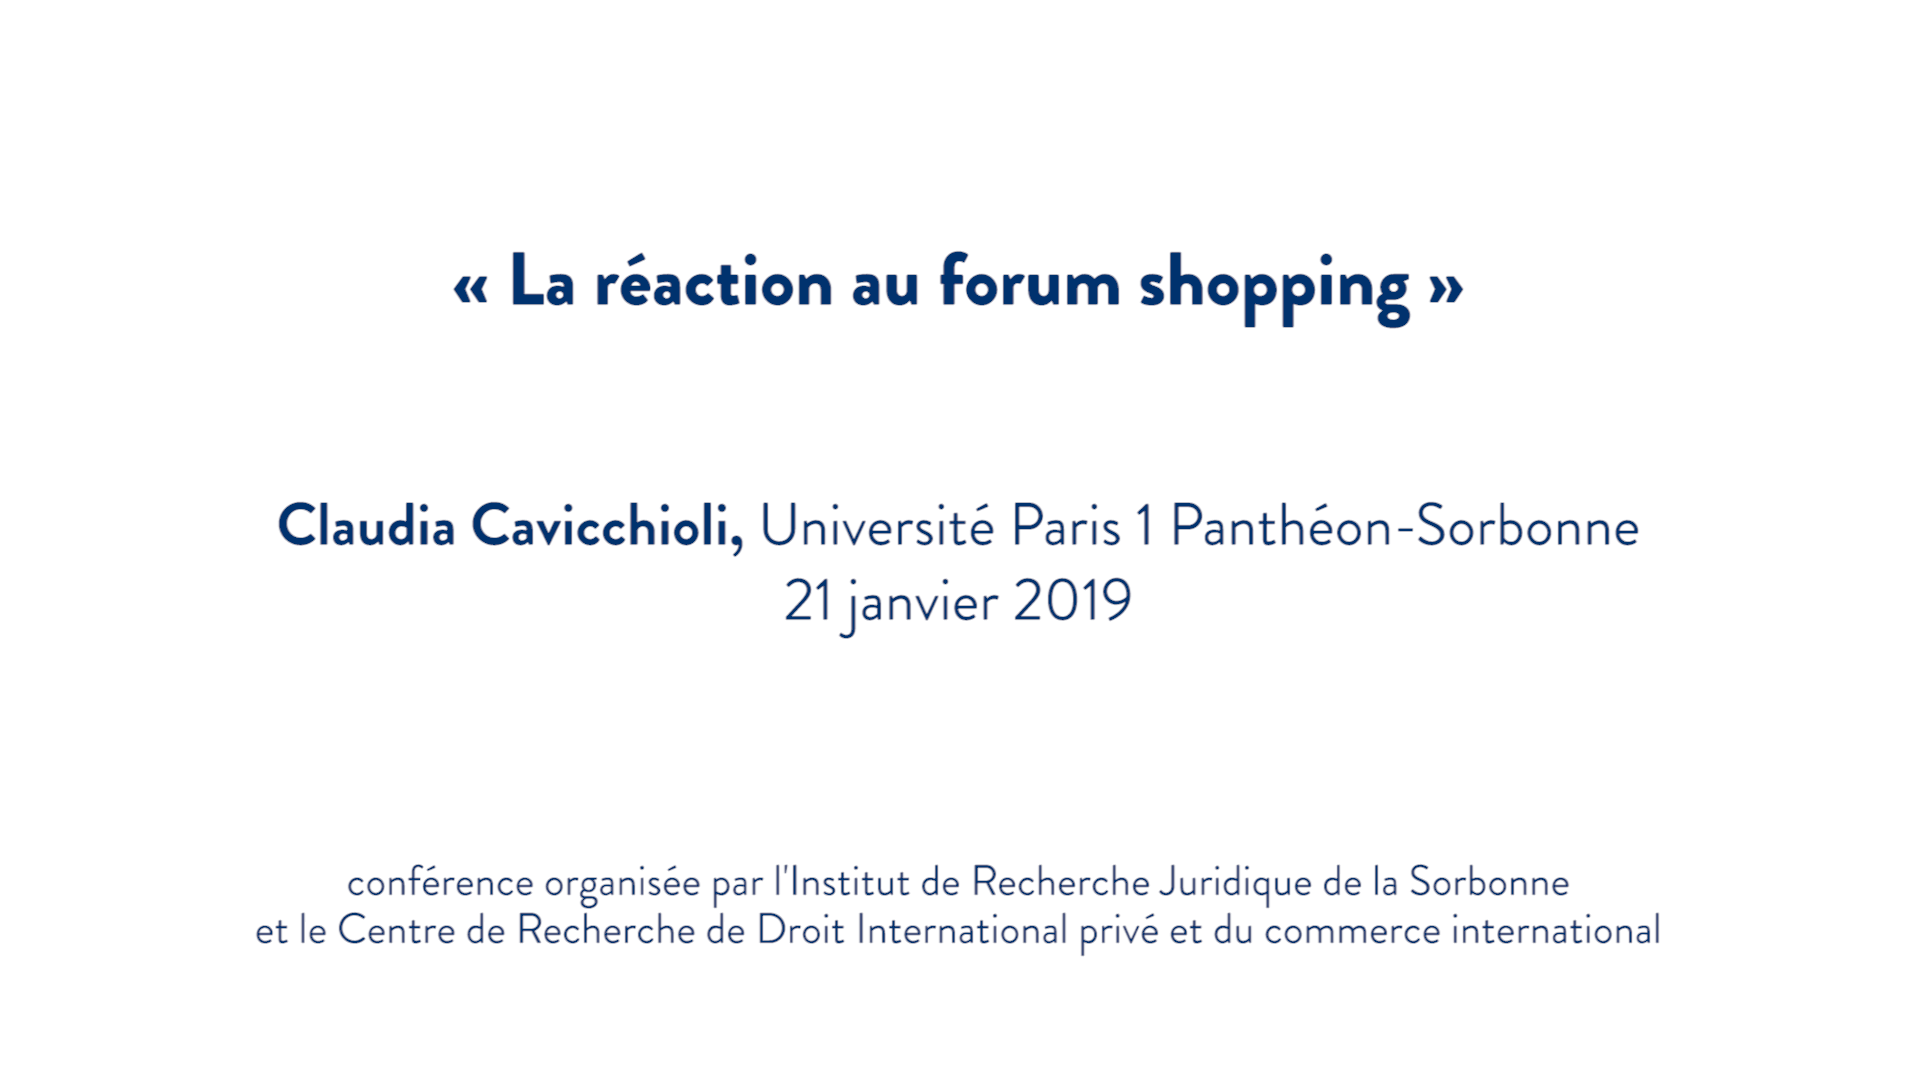 La réaction au forum shopping - Claudia Cavicchioli